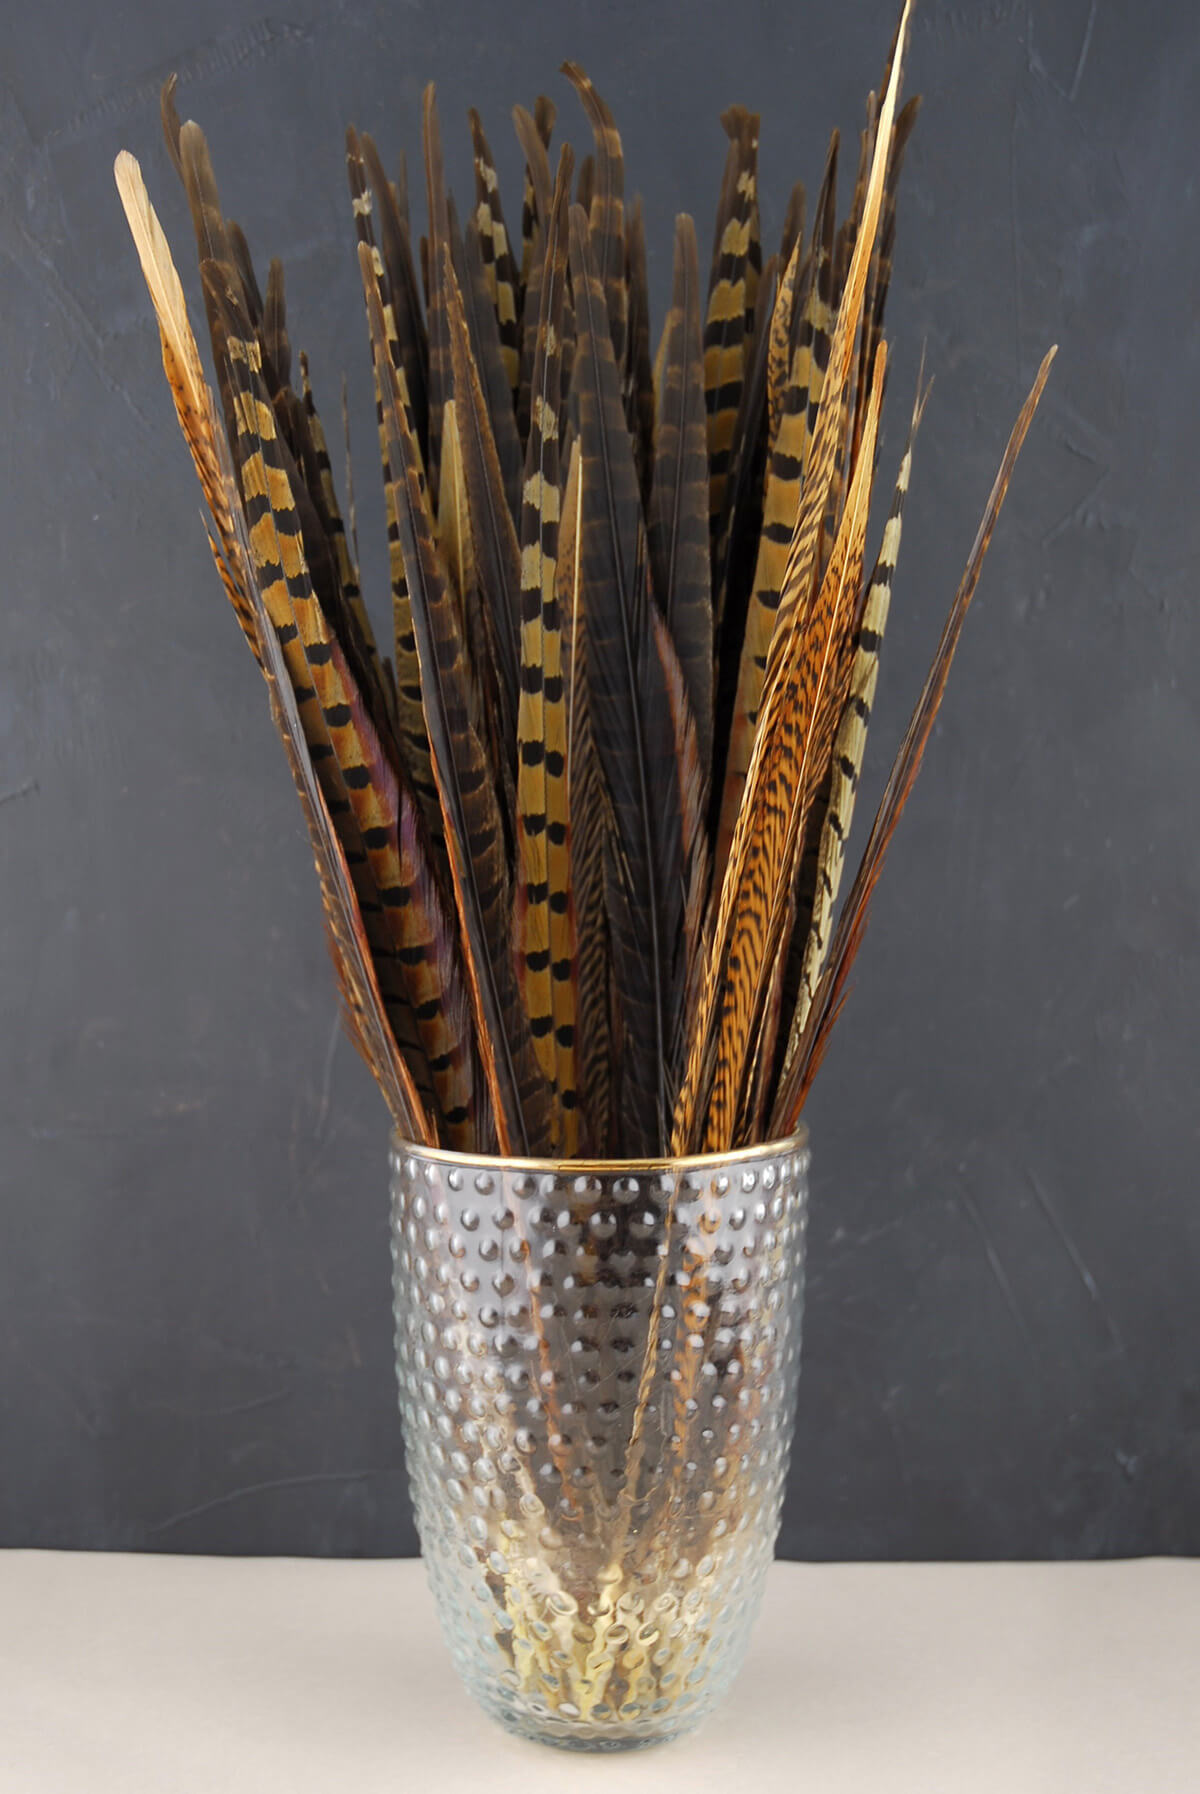 Pheasant tail feathers inch